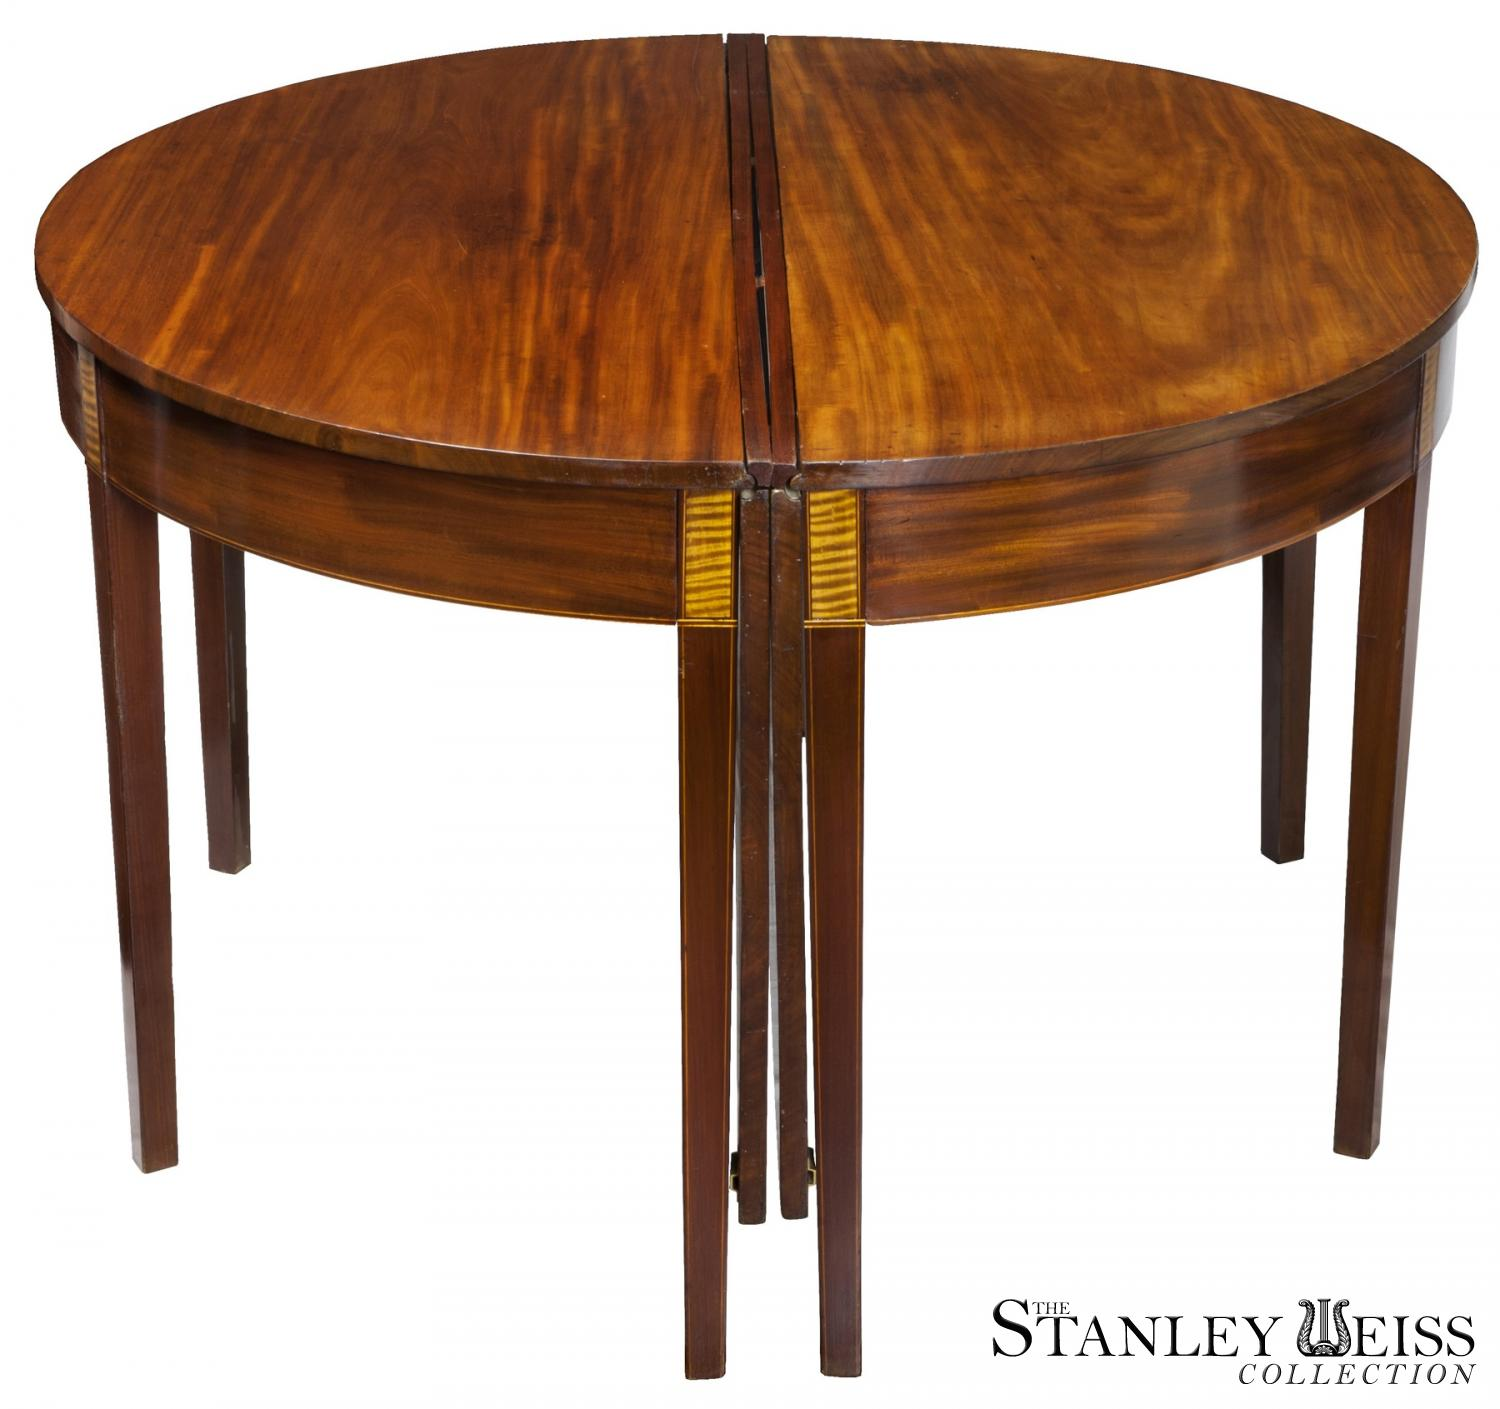 A Fine Federal Mahogany Hepplewhite 3 part BanquetDining  : 0653a81af4e606570999c6e8d3151e98 from www.stanleyweiss.com size 1500 x 1409 jpeg 138kB